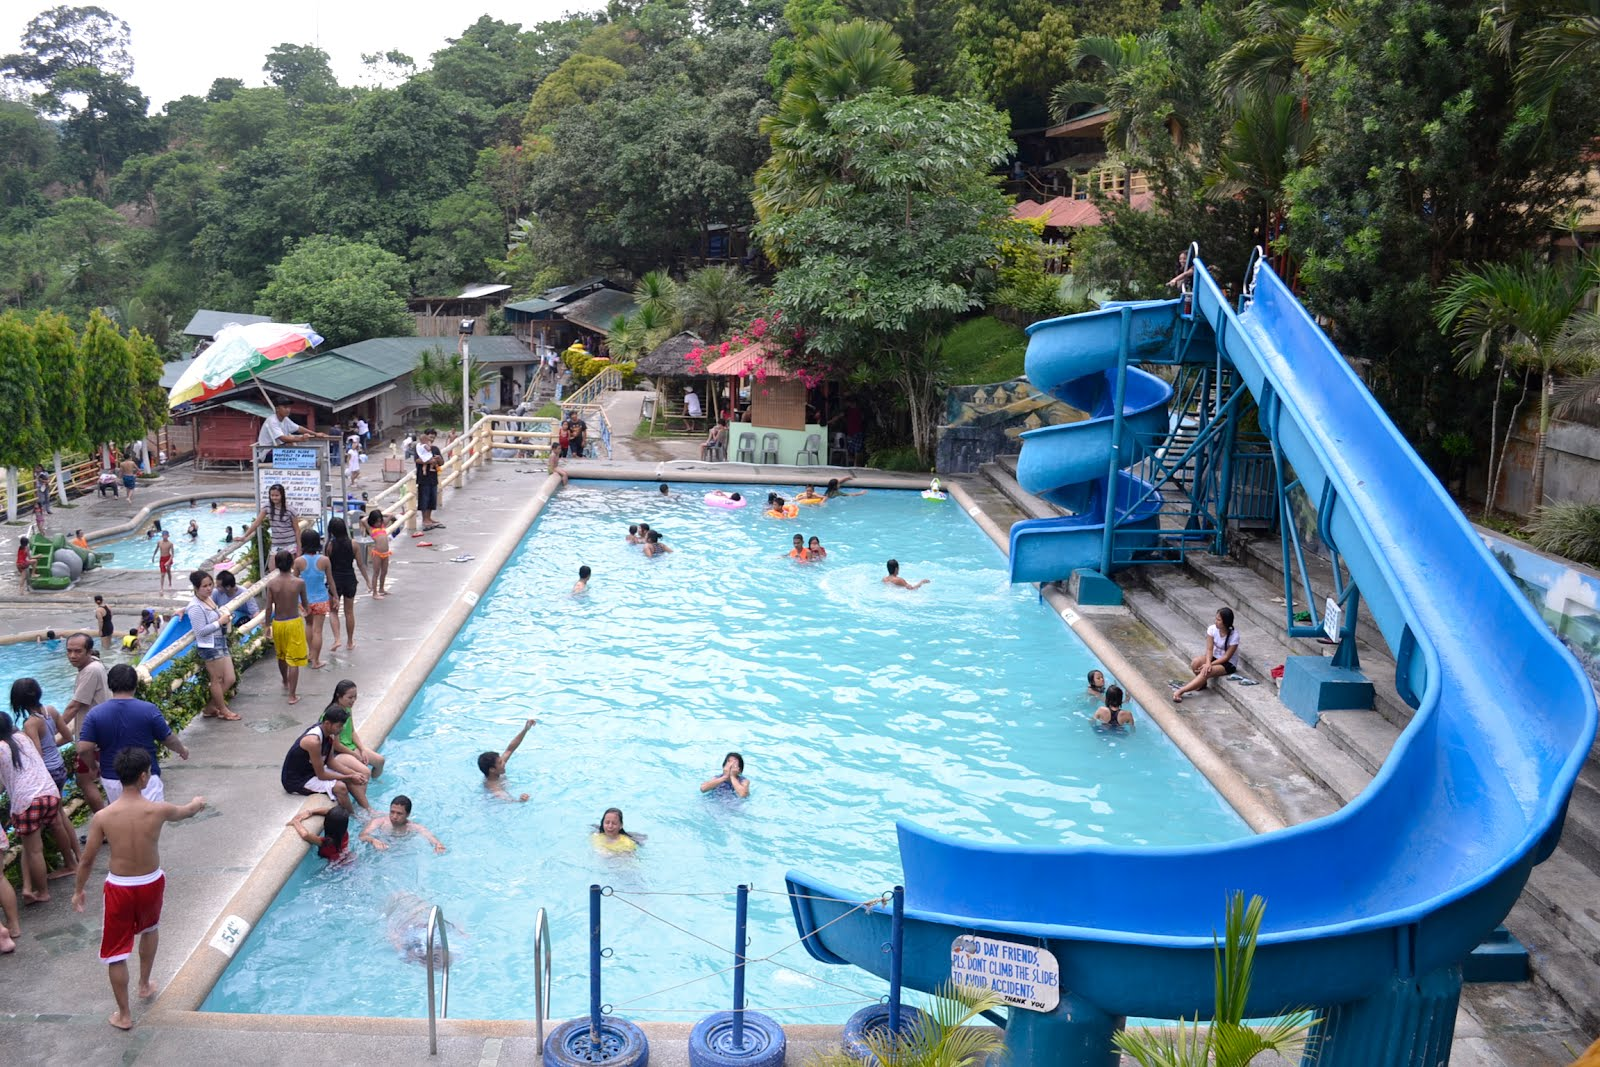 Eat food and travel with me riverview waterpark - Riverview swimming pool pittsburgh pa ...